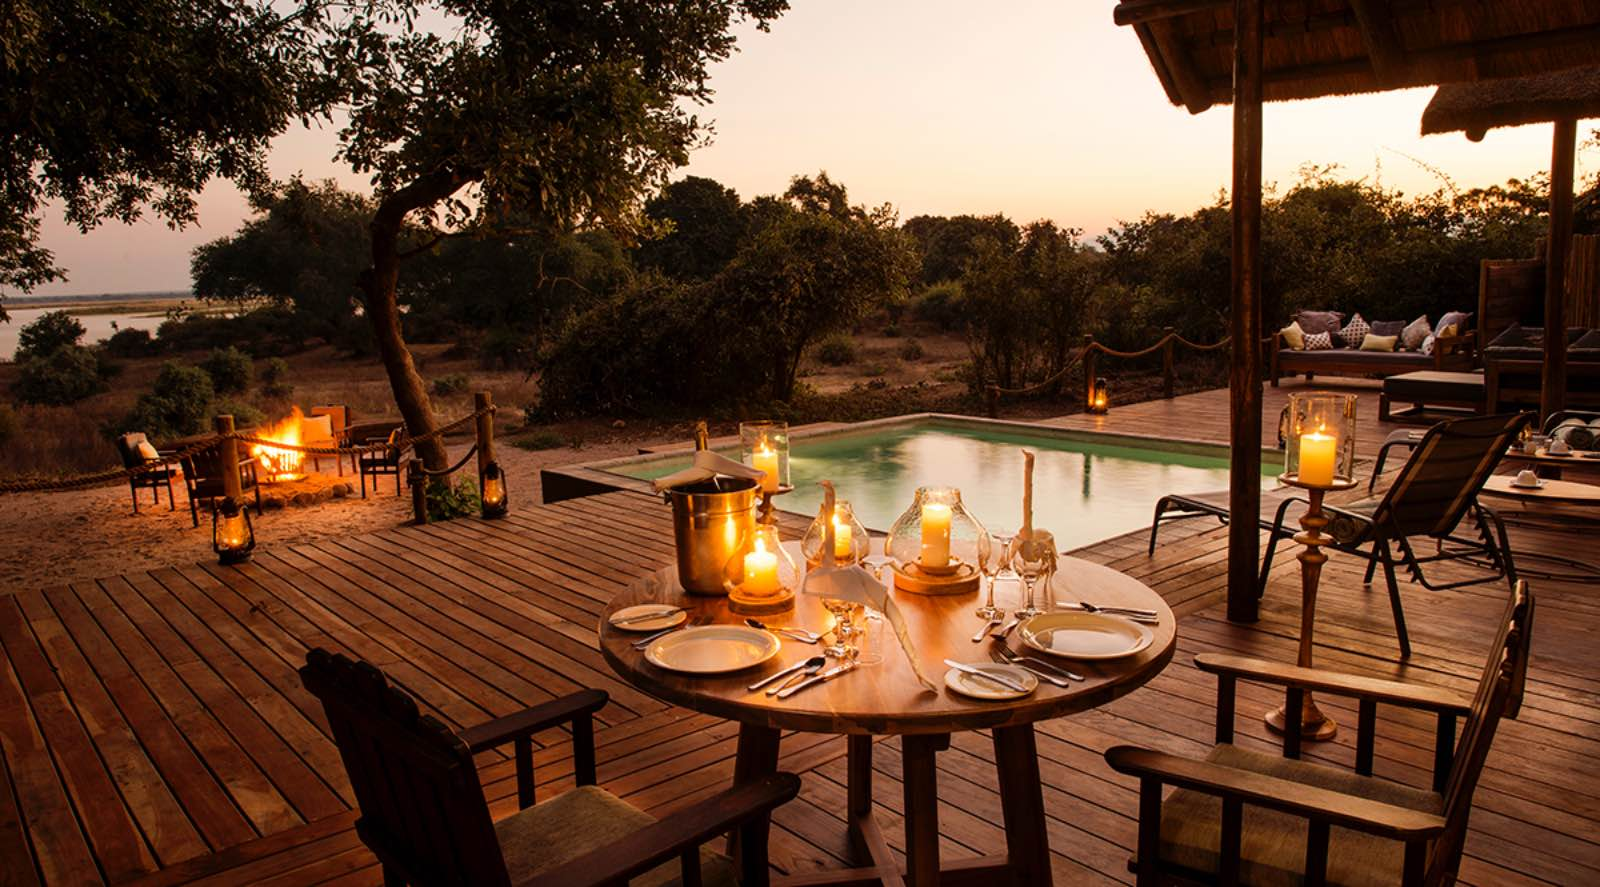 Romantic private dining on the deck at Chiawa Camp Safari Suite